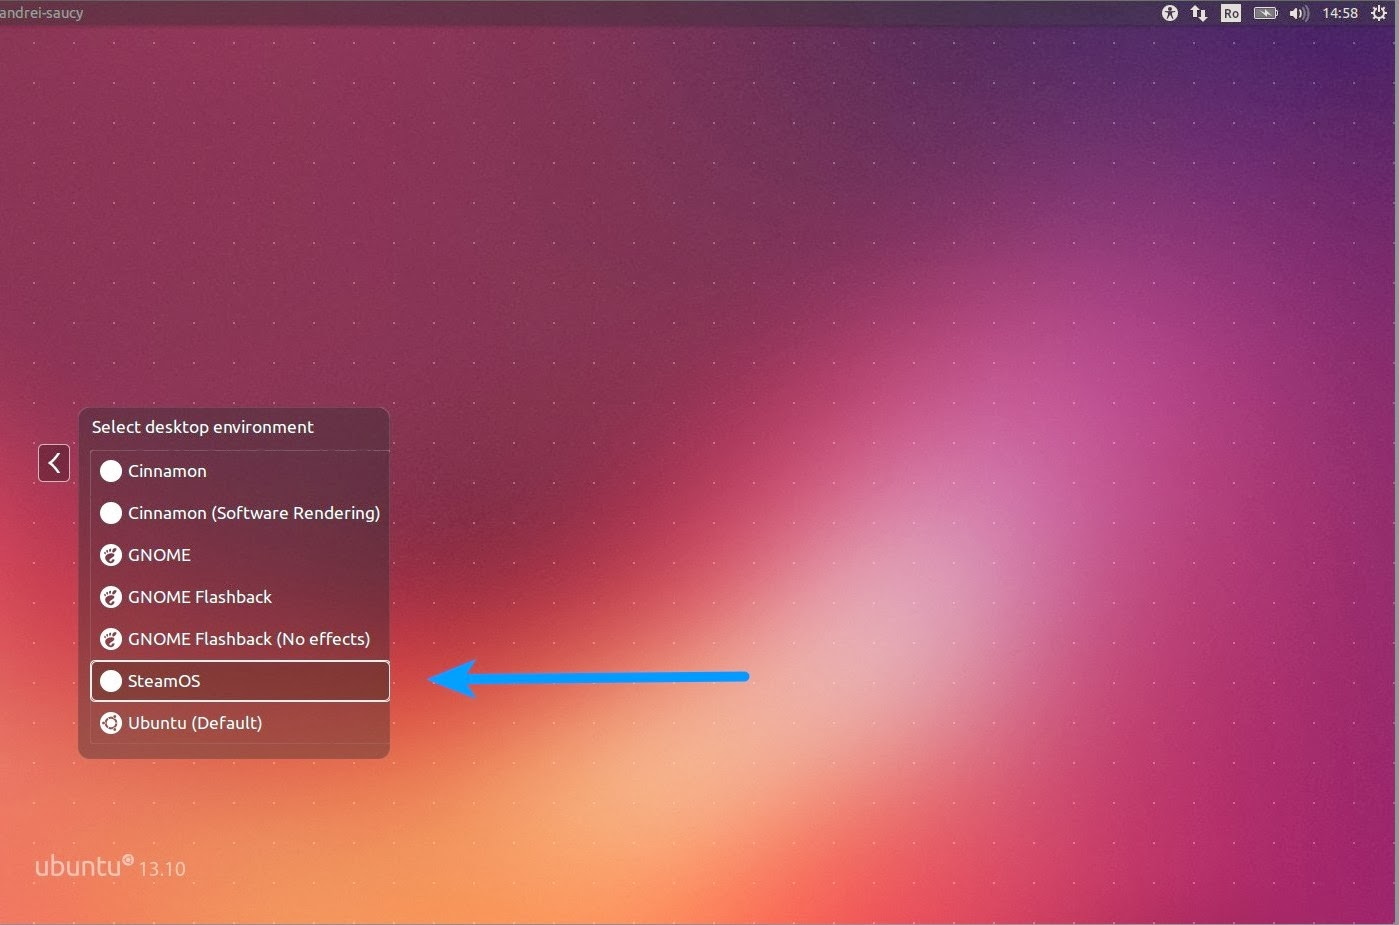 Petescan321 — Install The SteamOS Session In Ubuntu